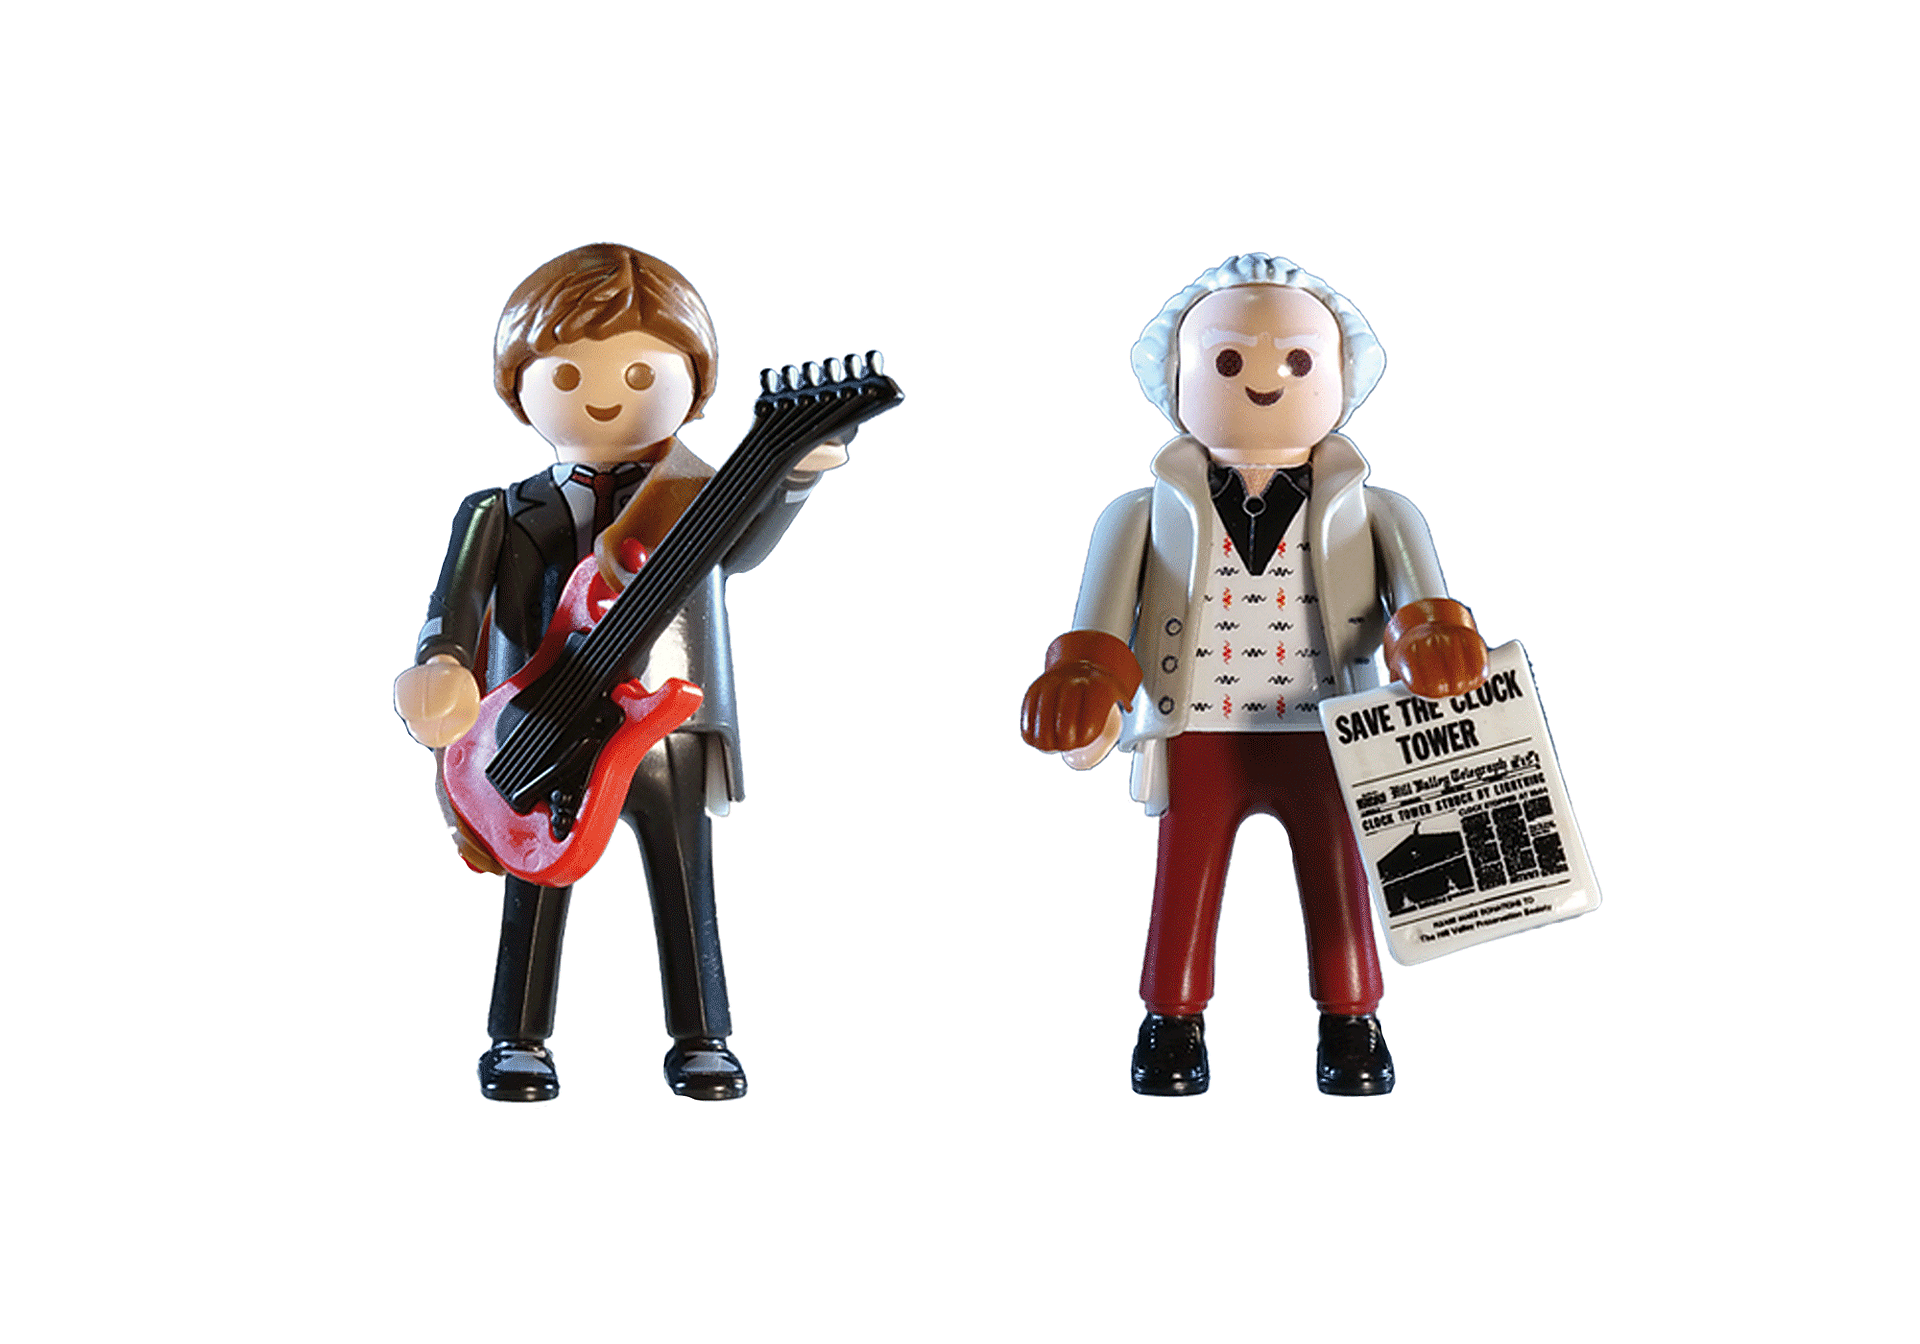 70459 Back to the Future Marty McFly und Dr. Emmett Brown zoom image5